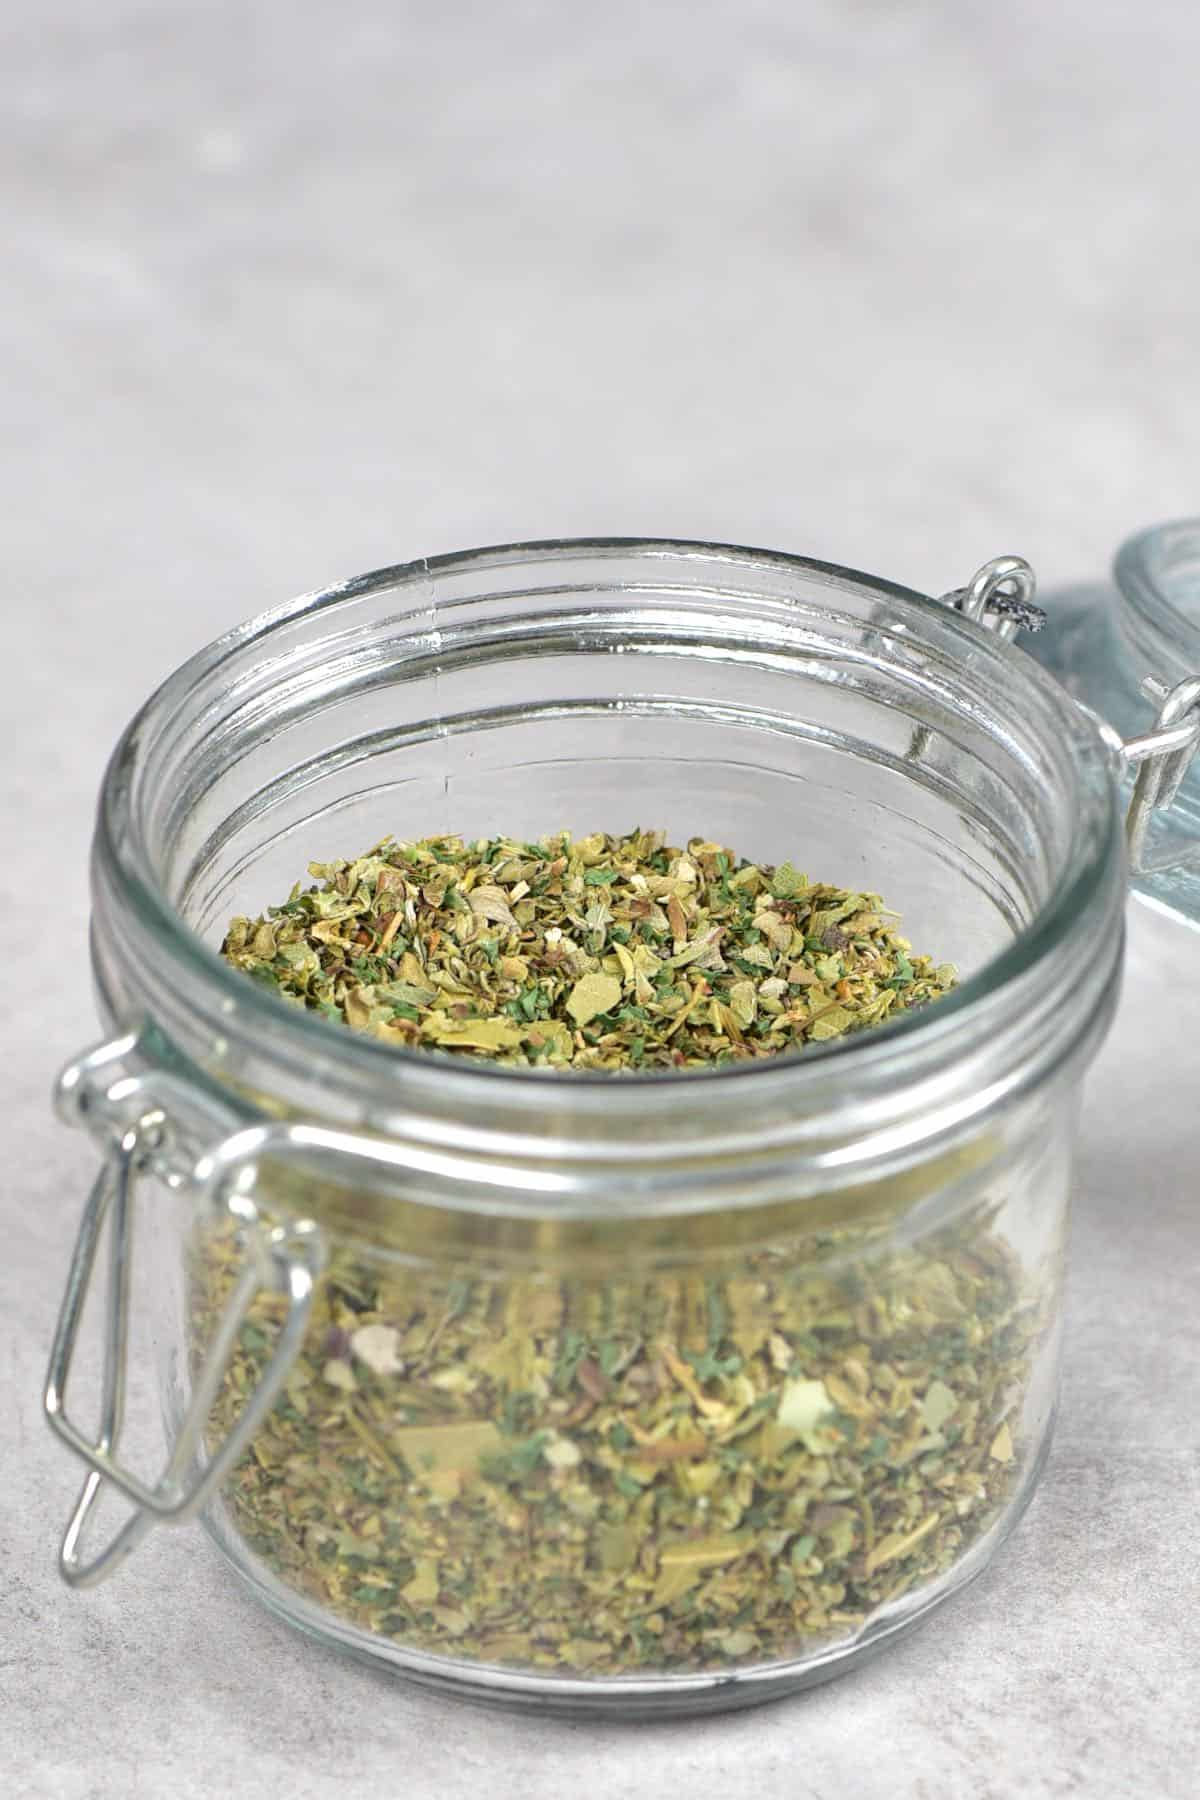 A jar with Italian herb blend